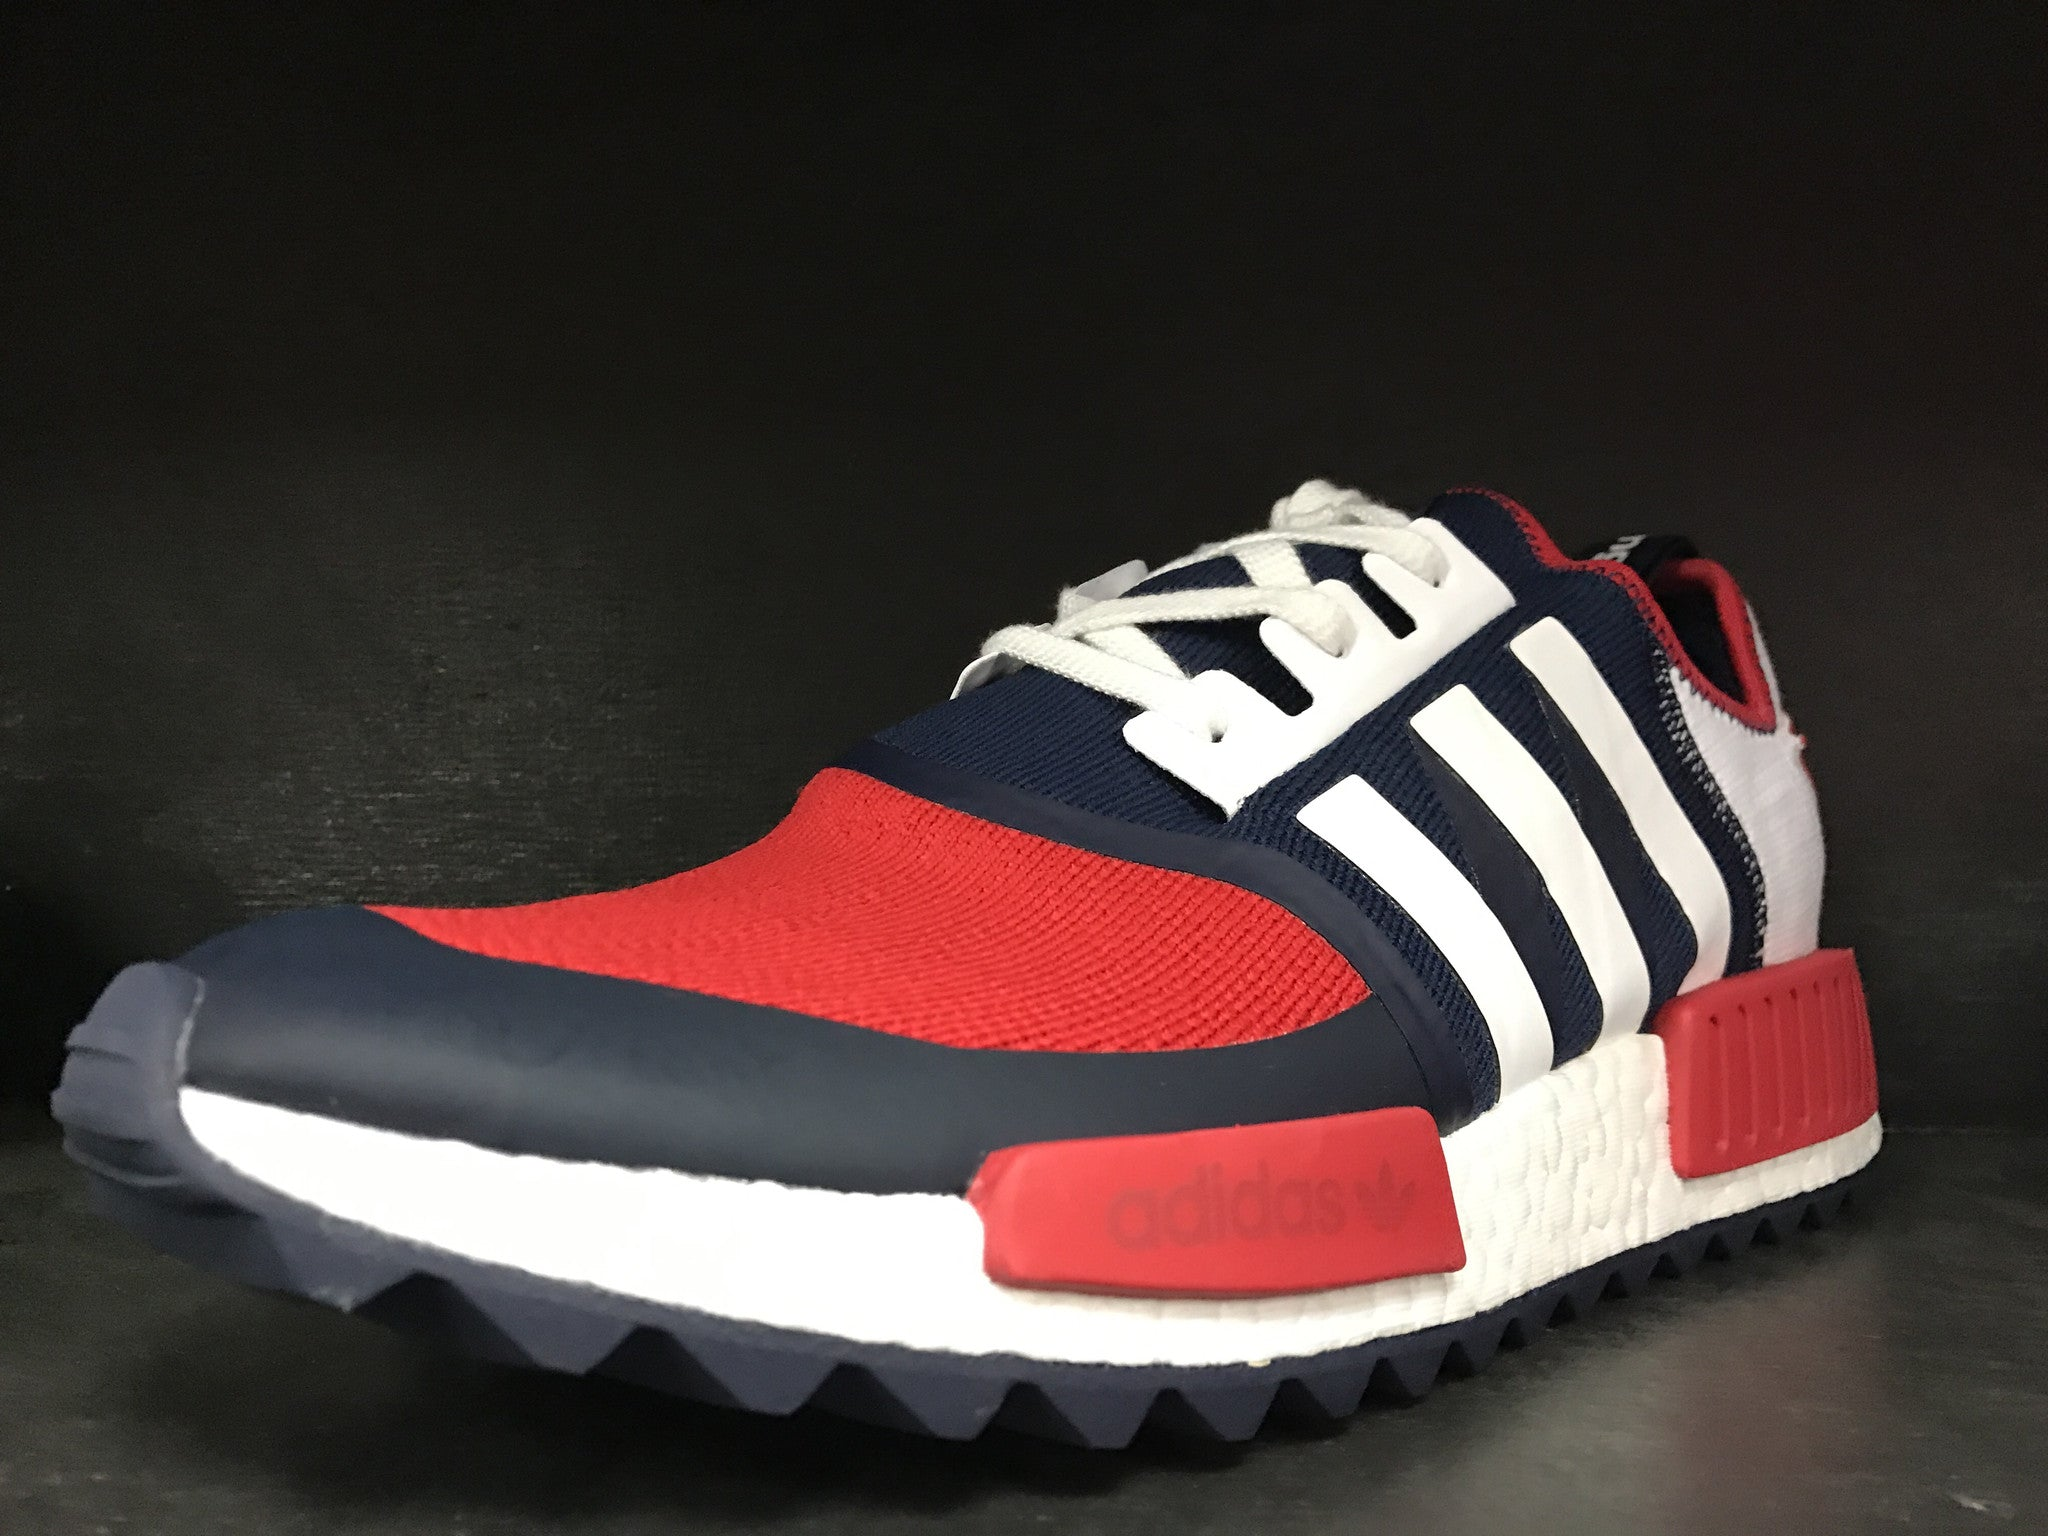 half off a6d88 84cf6 Adidas NMD R1 Trail  White Mountaineering Collegiate Navy